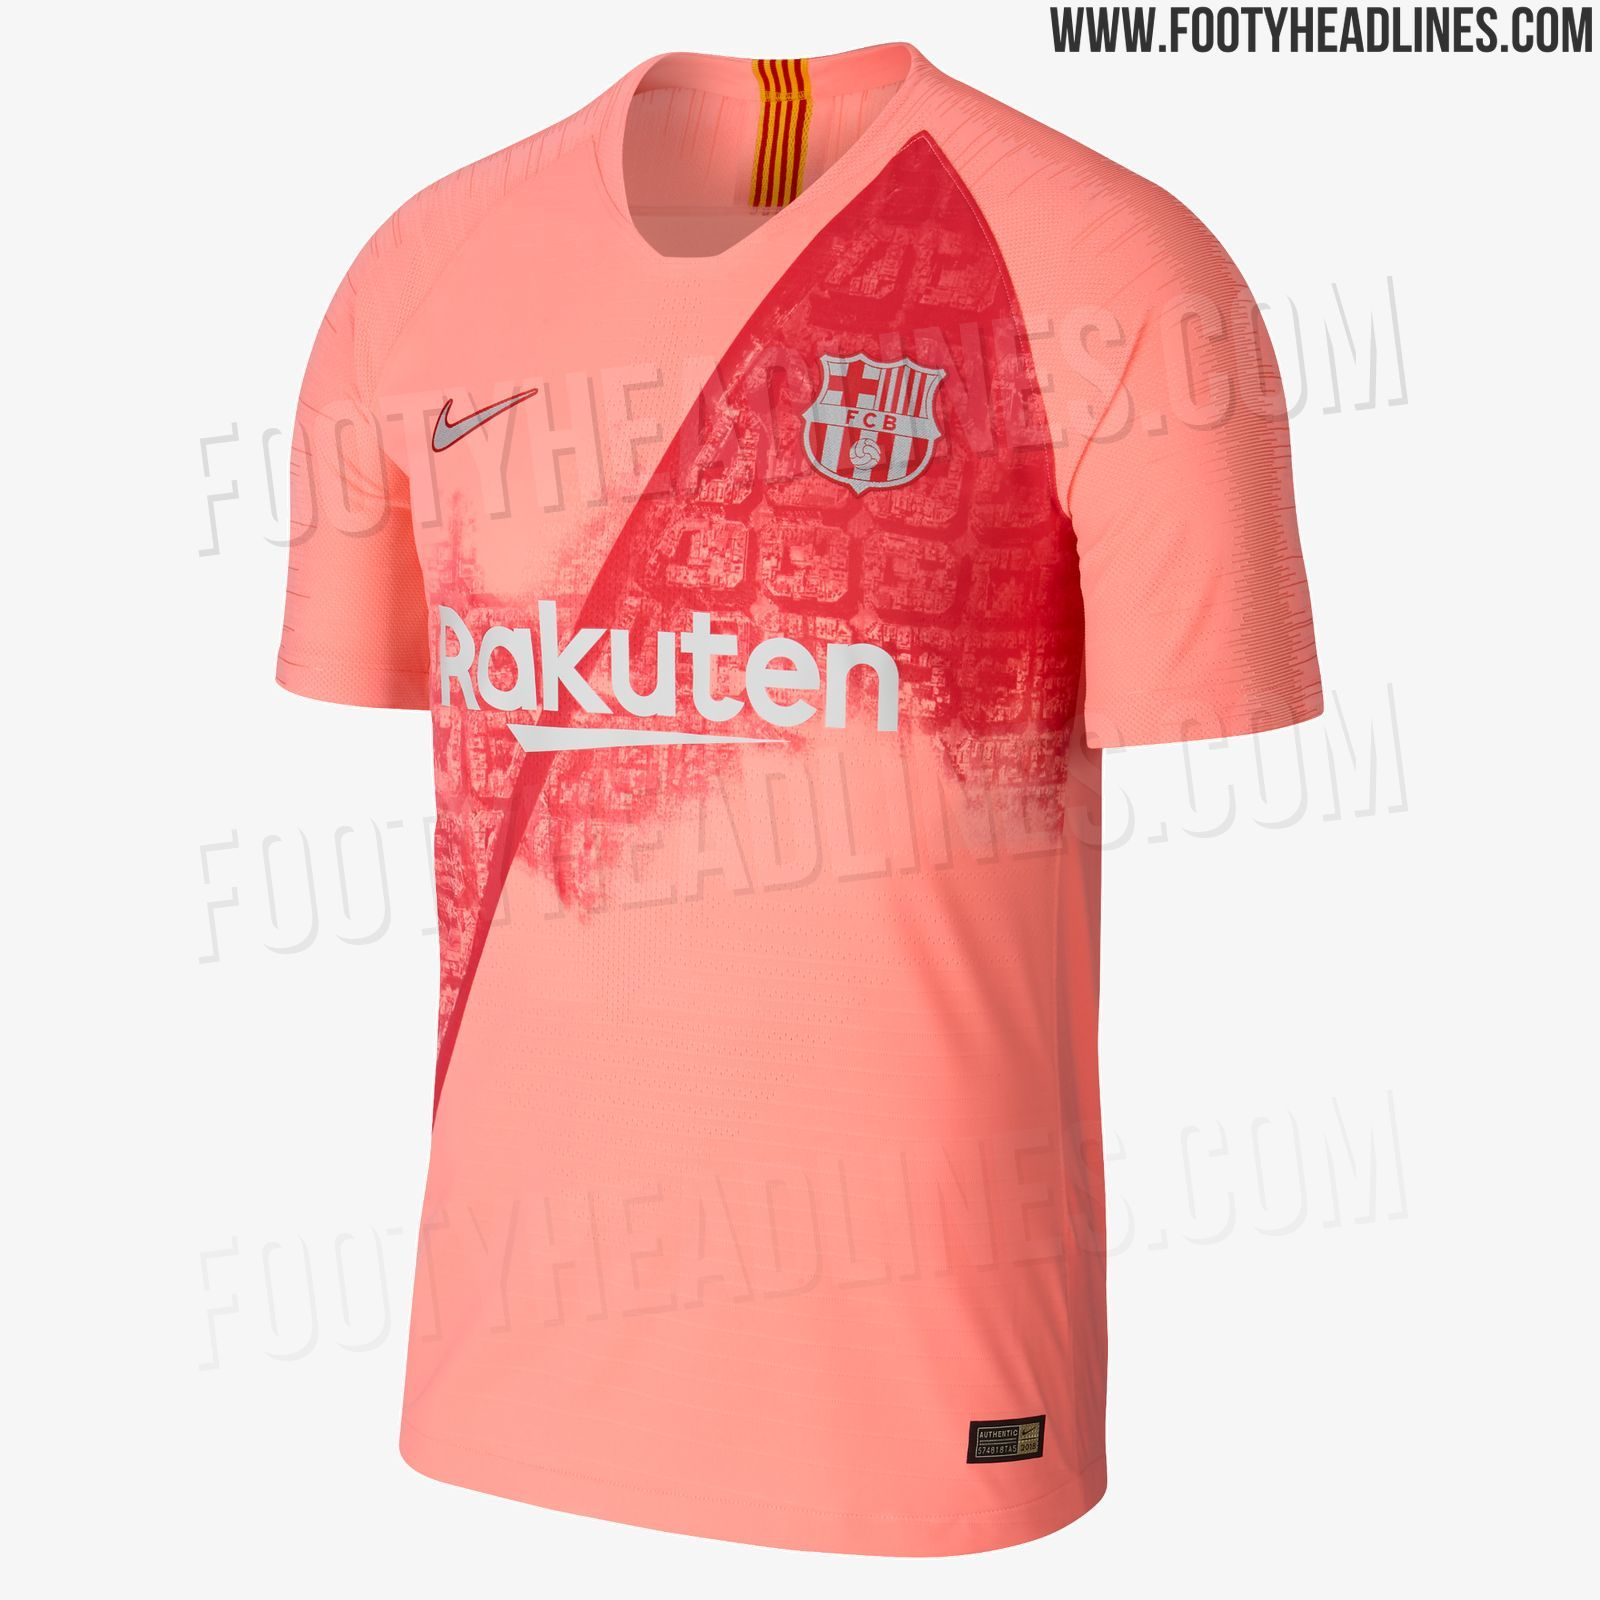 801a0a78792cec Nike FC Barcelona 18-19 Third Kit Released - Footy Headlines ...